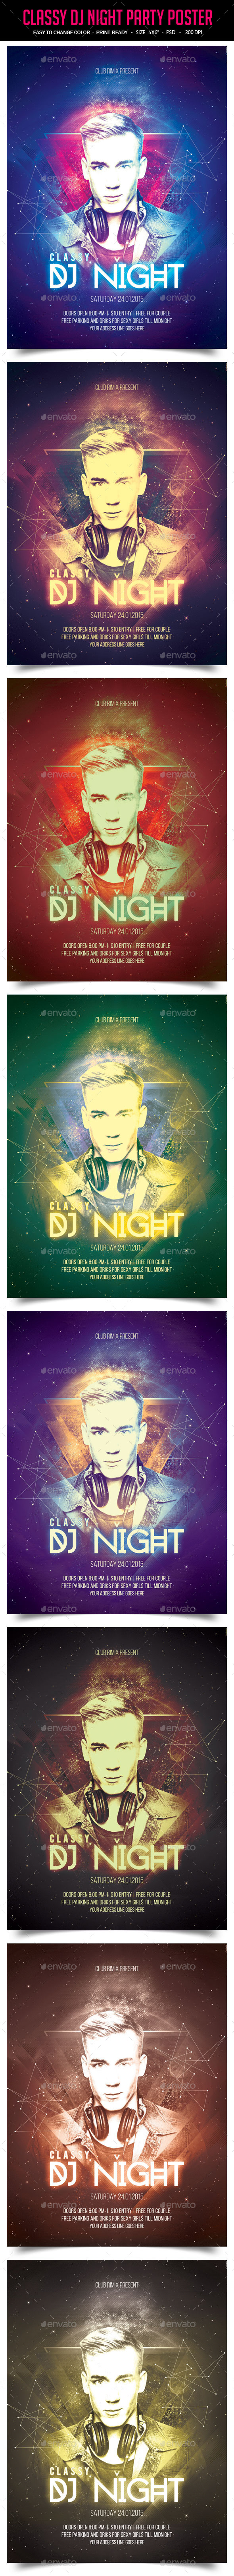 Classy Dj Night Party Poster - Clubs & Parties Events